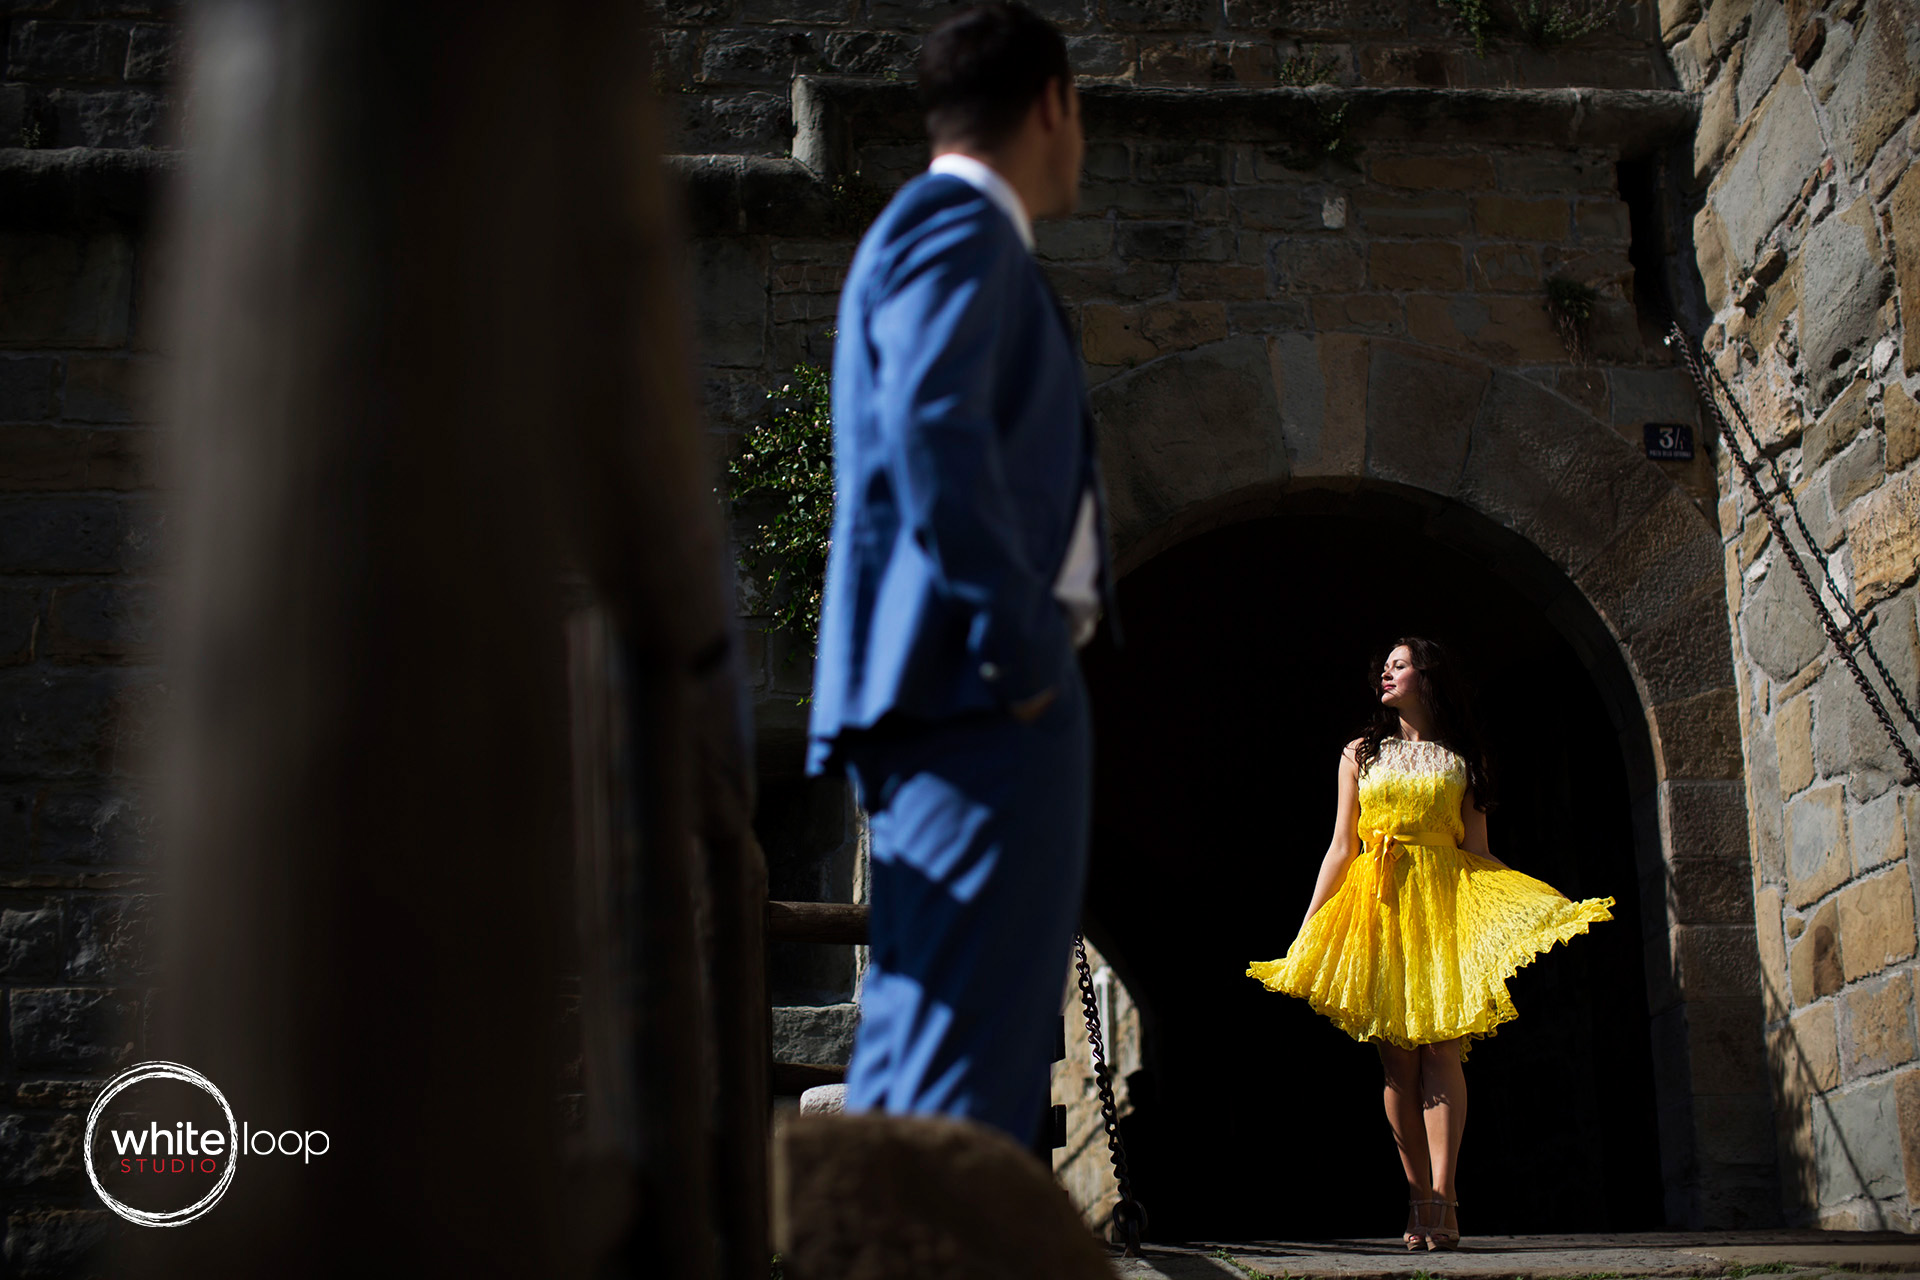 The groom keeping eyes on the bride and her beauty in a yellow dress. A little more formal clothes.